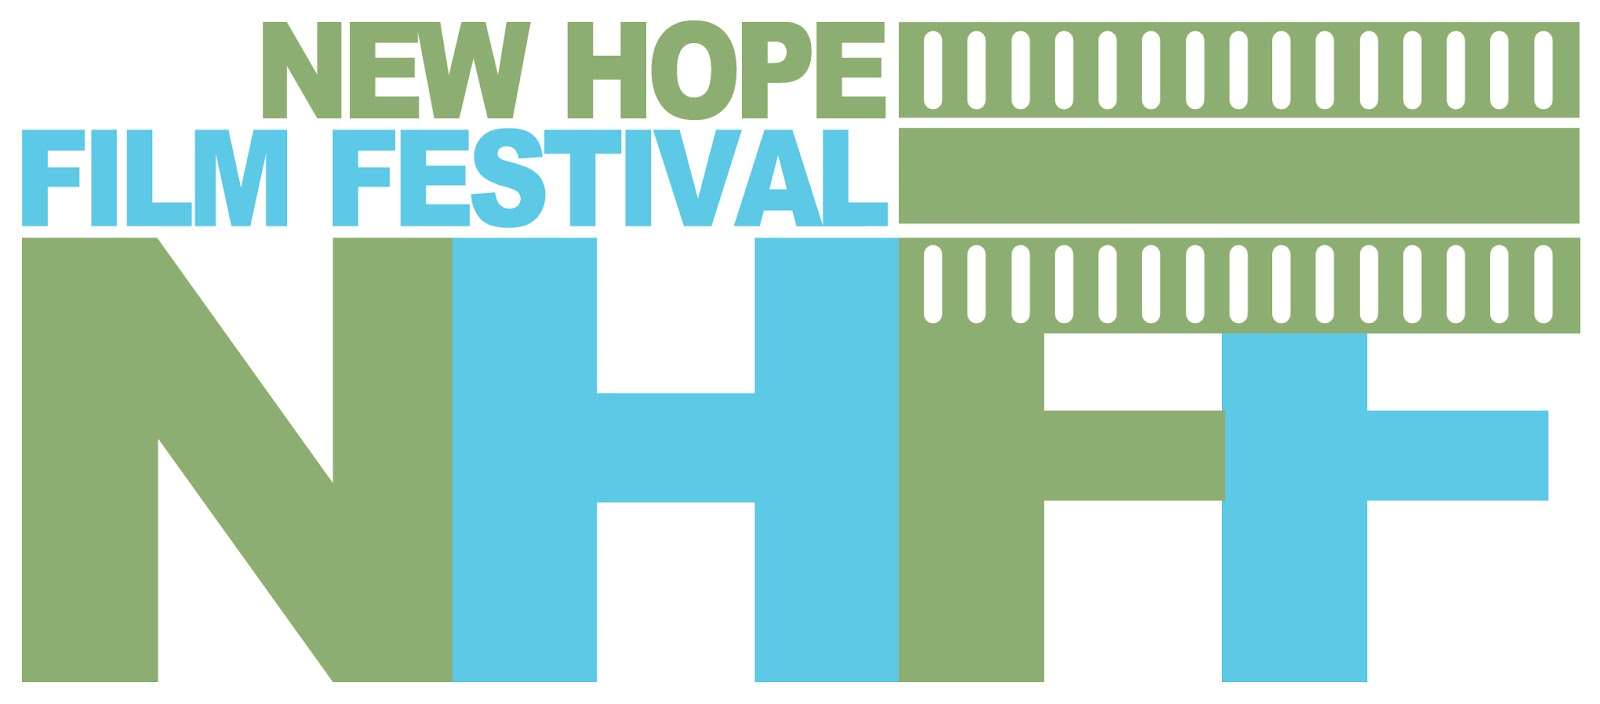 New Hope Film Festival schedule announced